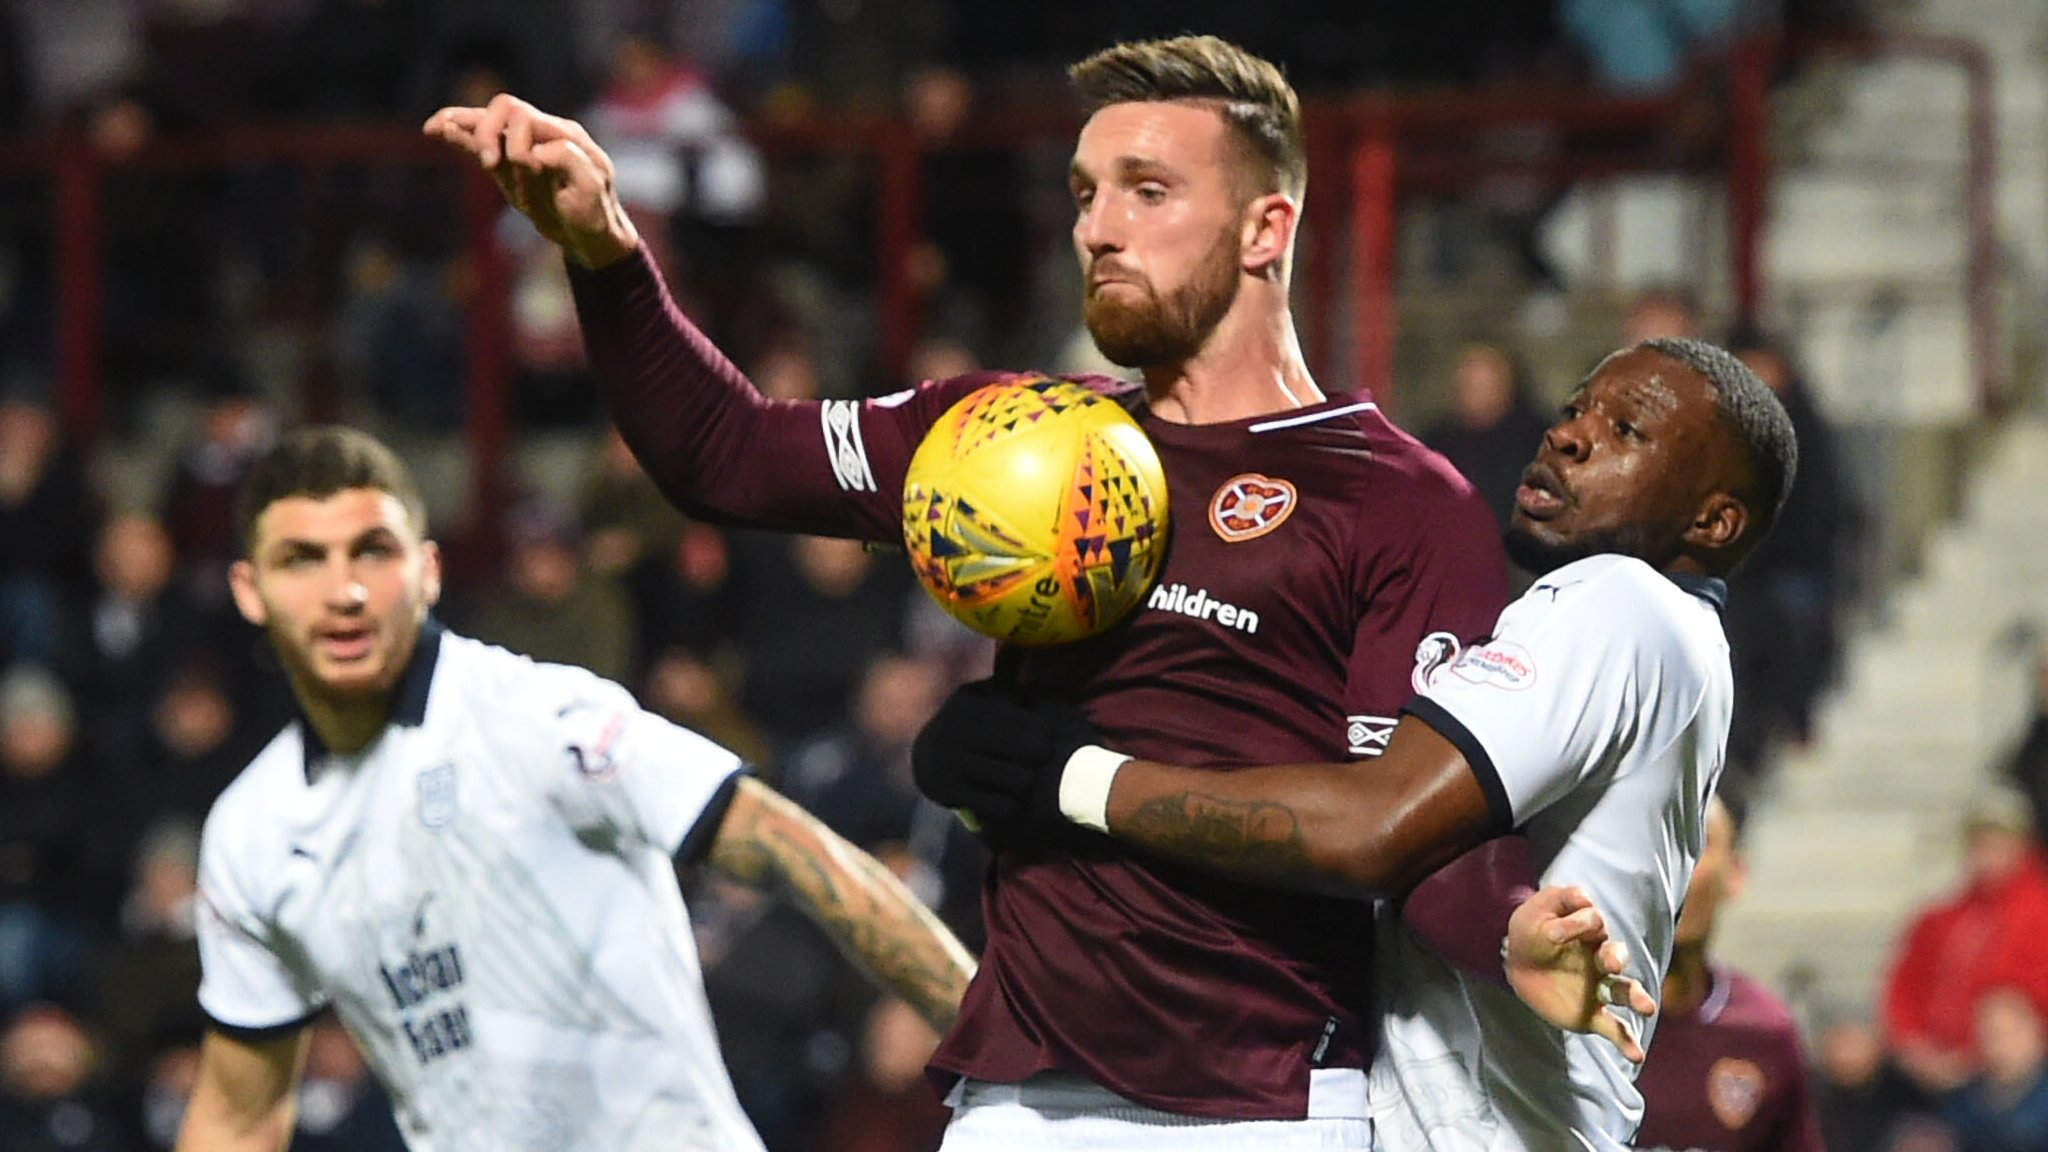 David Vanecek wasn't at the races, says Hearts boss Levein after loss to Dundee